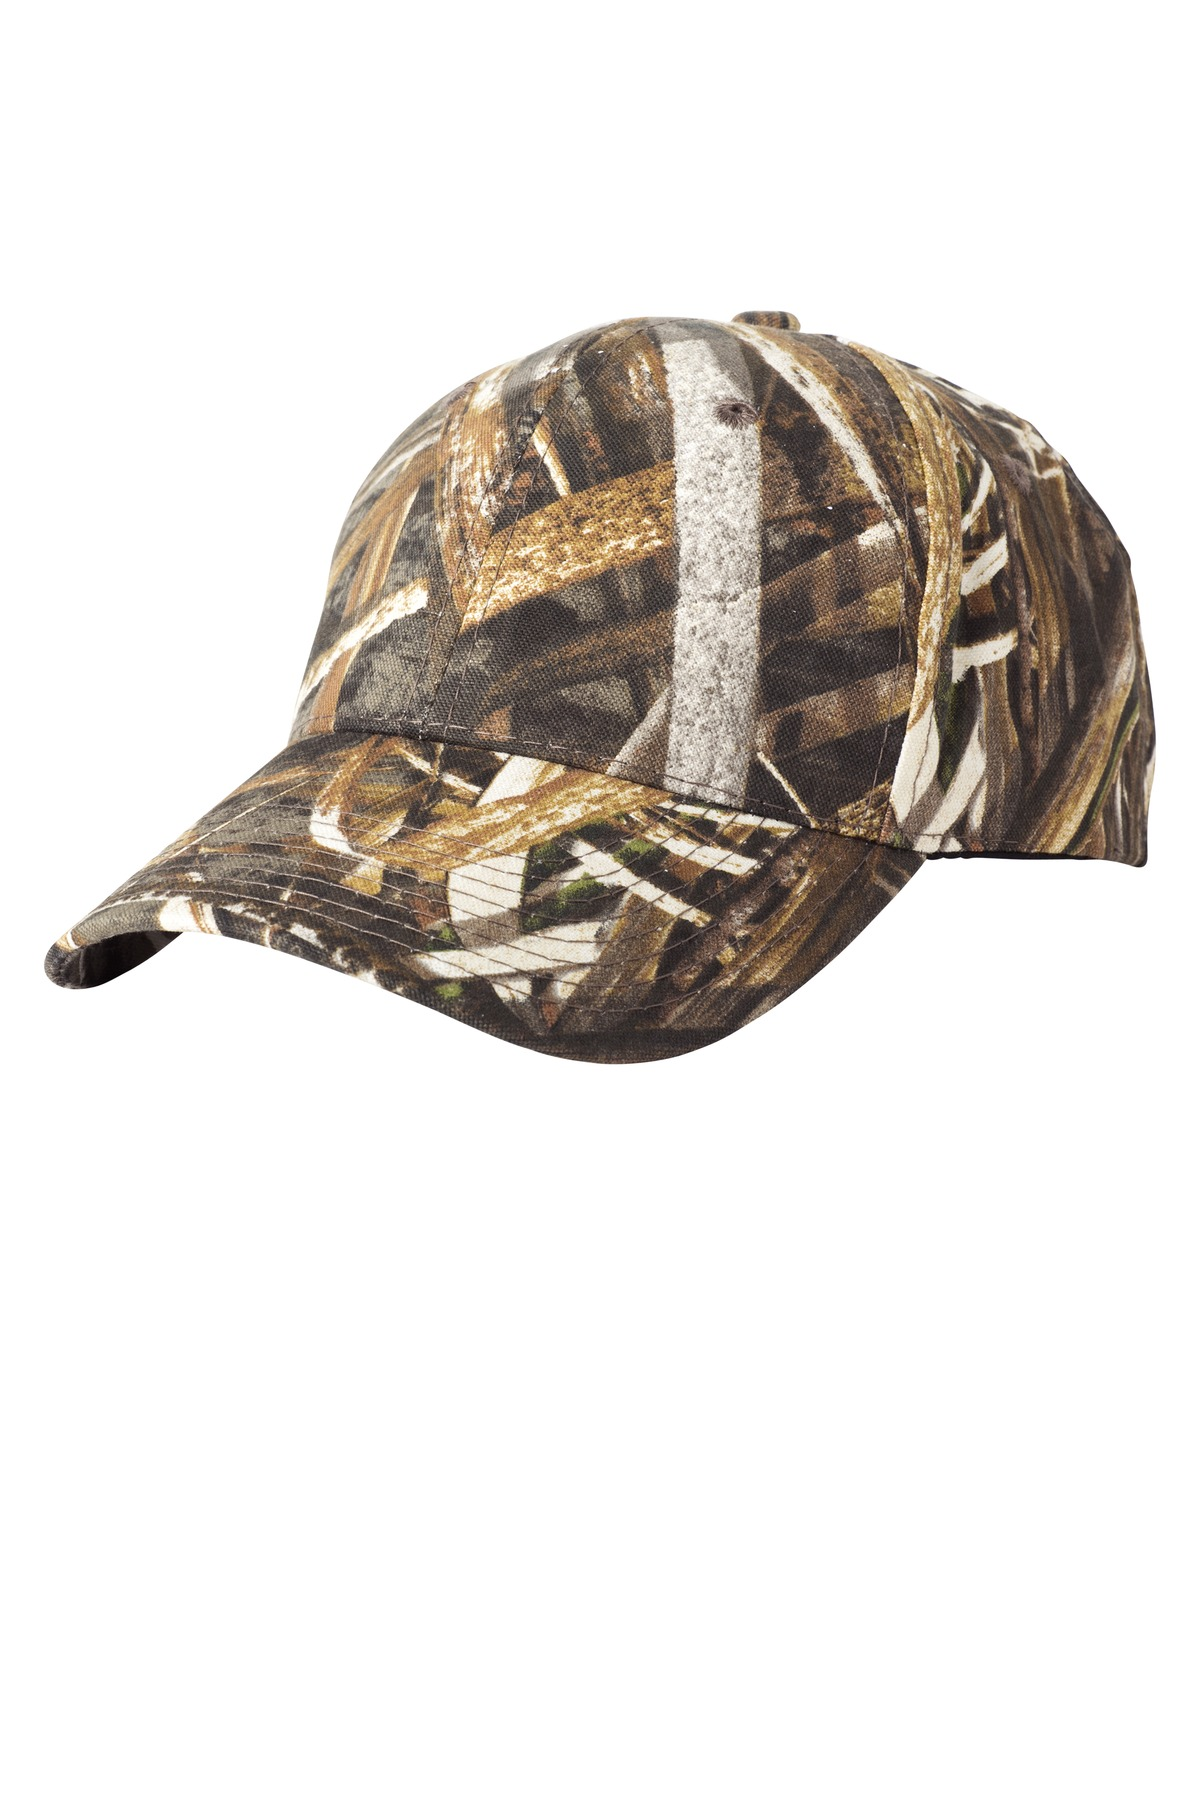 Port Authority® Pro Camouflage Series Cap.-Port Authority